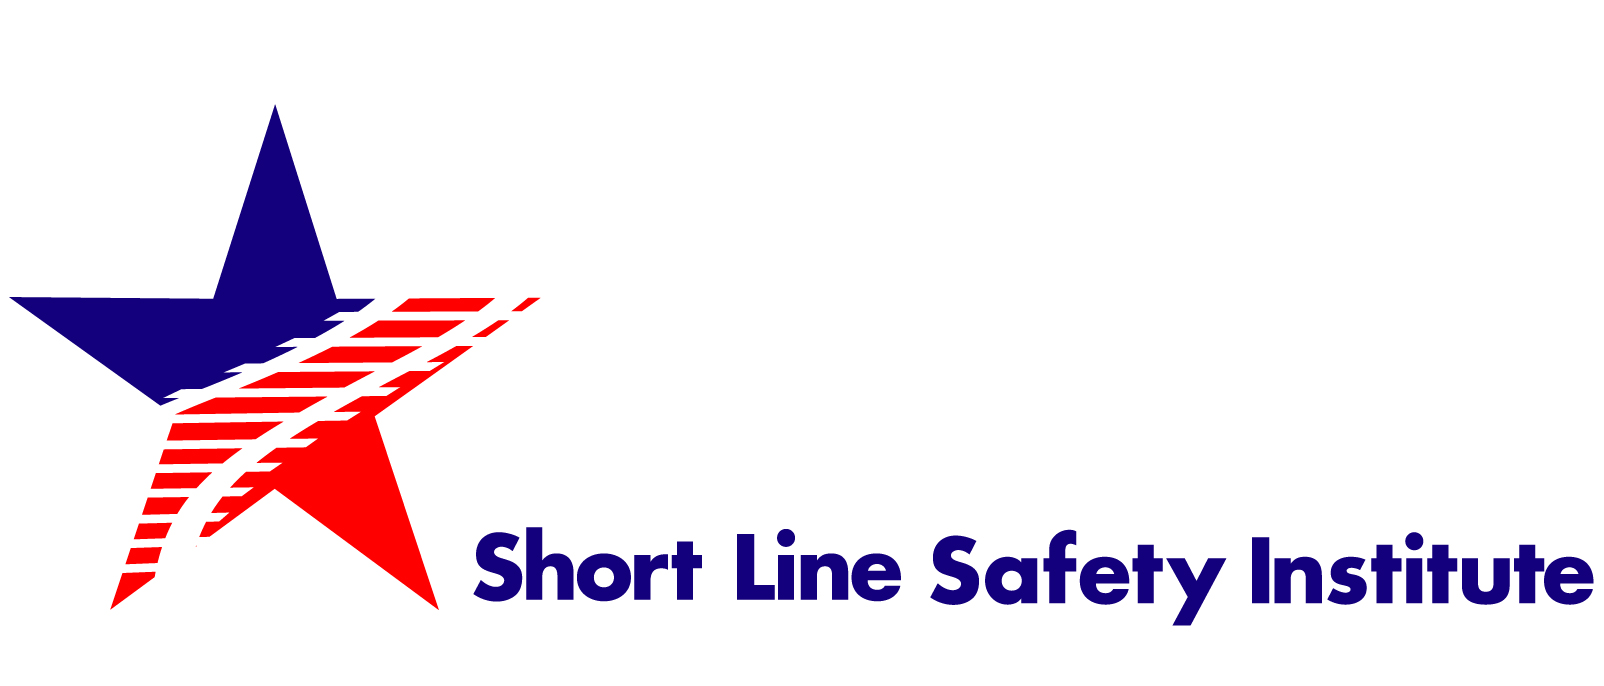 Short Line Safety Institute Launches, Focus on Safety Culture